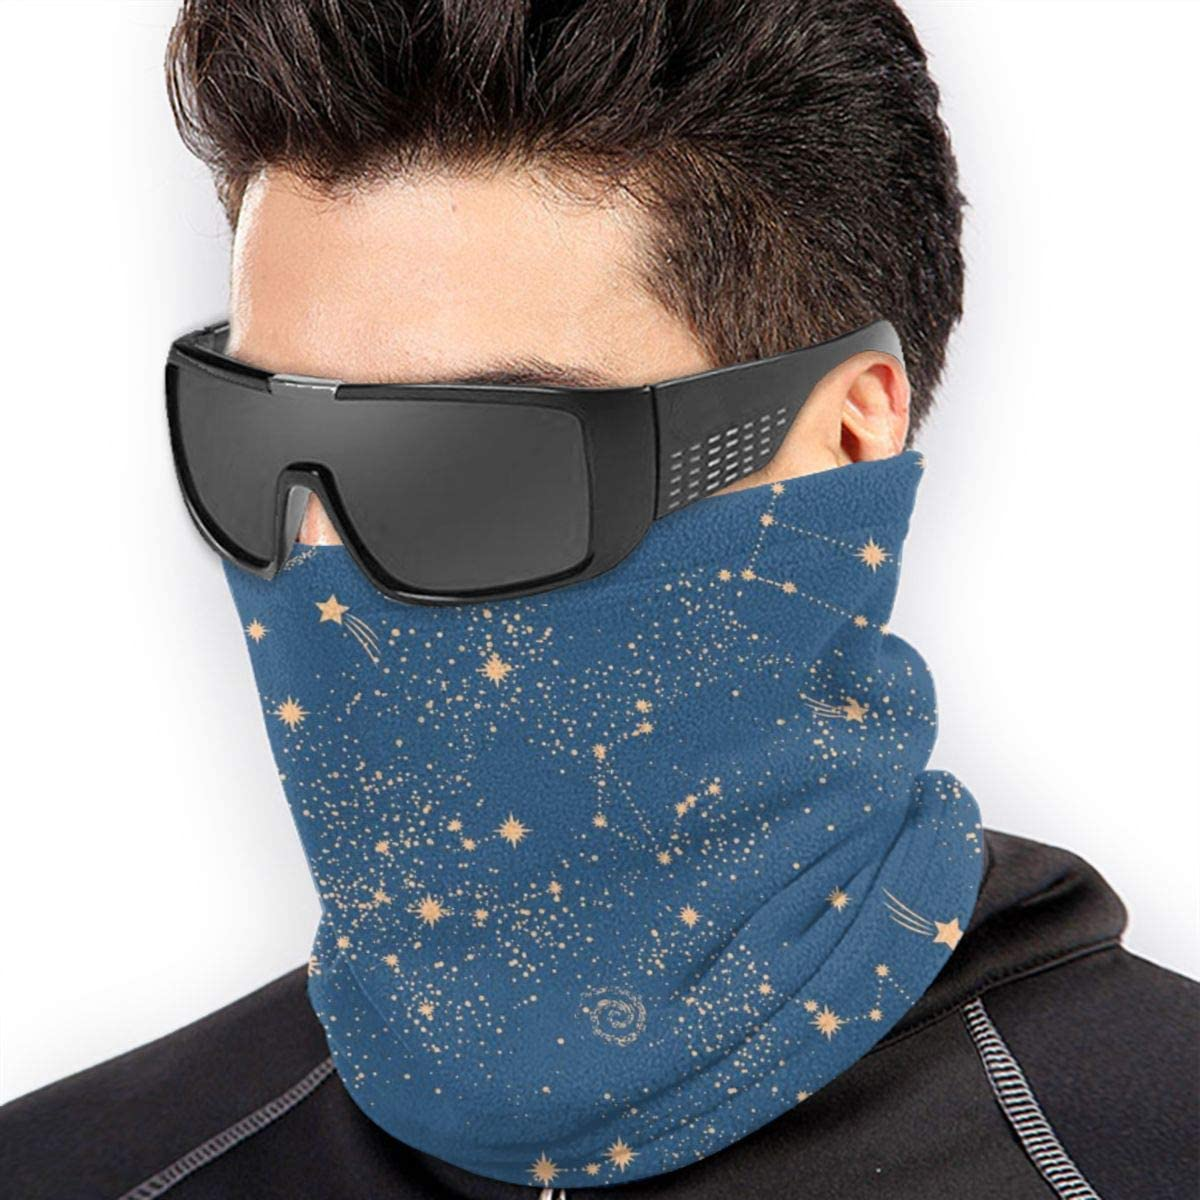 Space Galaxy Constellation Seamless Pattern Print Could Be Used for Textile Unisex Winter Fleece Neck Warmer Gaiters Hairband Cold Weather Tube Face Mask Thermal Neck Scarf 9.8x11.8 inch